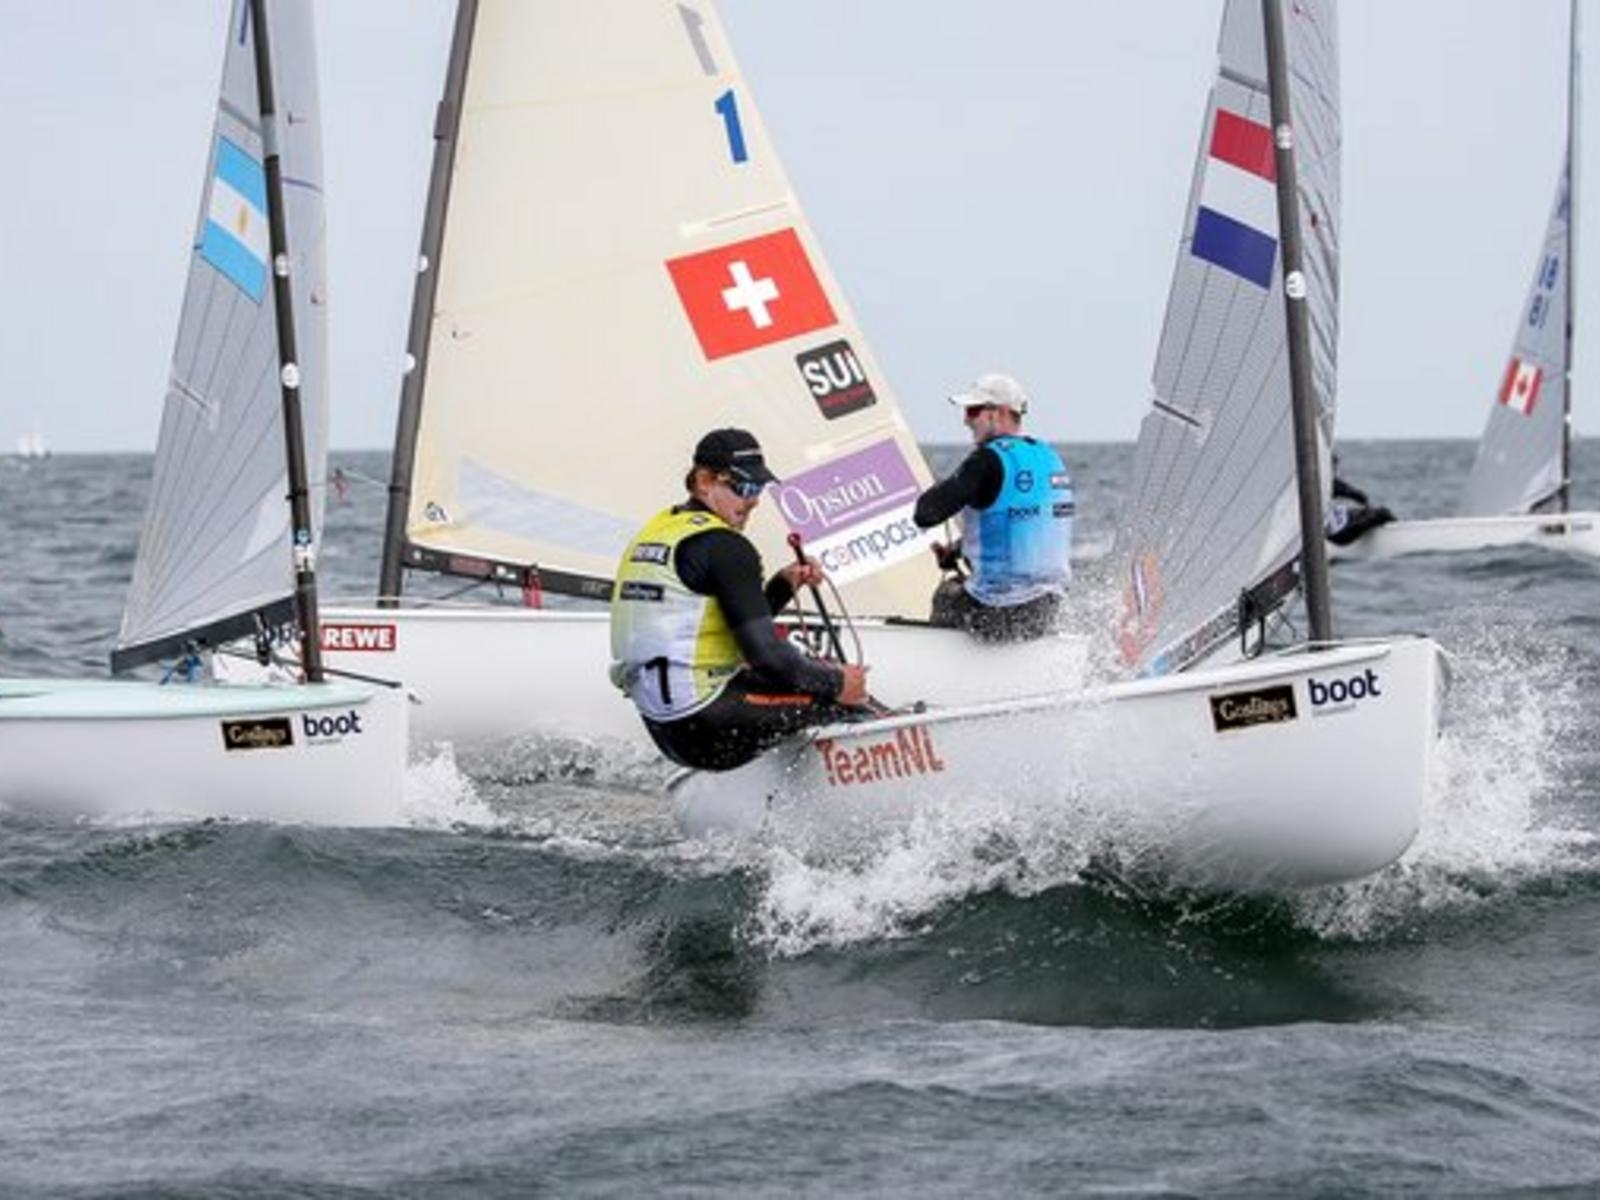 Olympic Classes - Kieler Woche - Kiel GER - Final results - Les Suisses